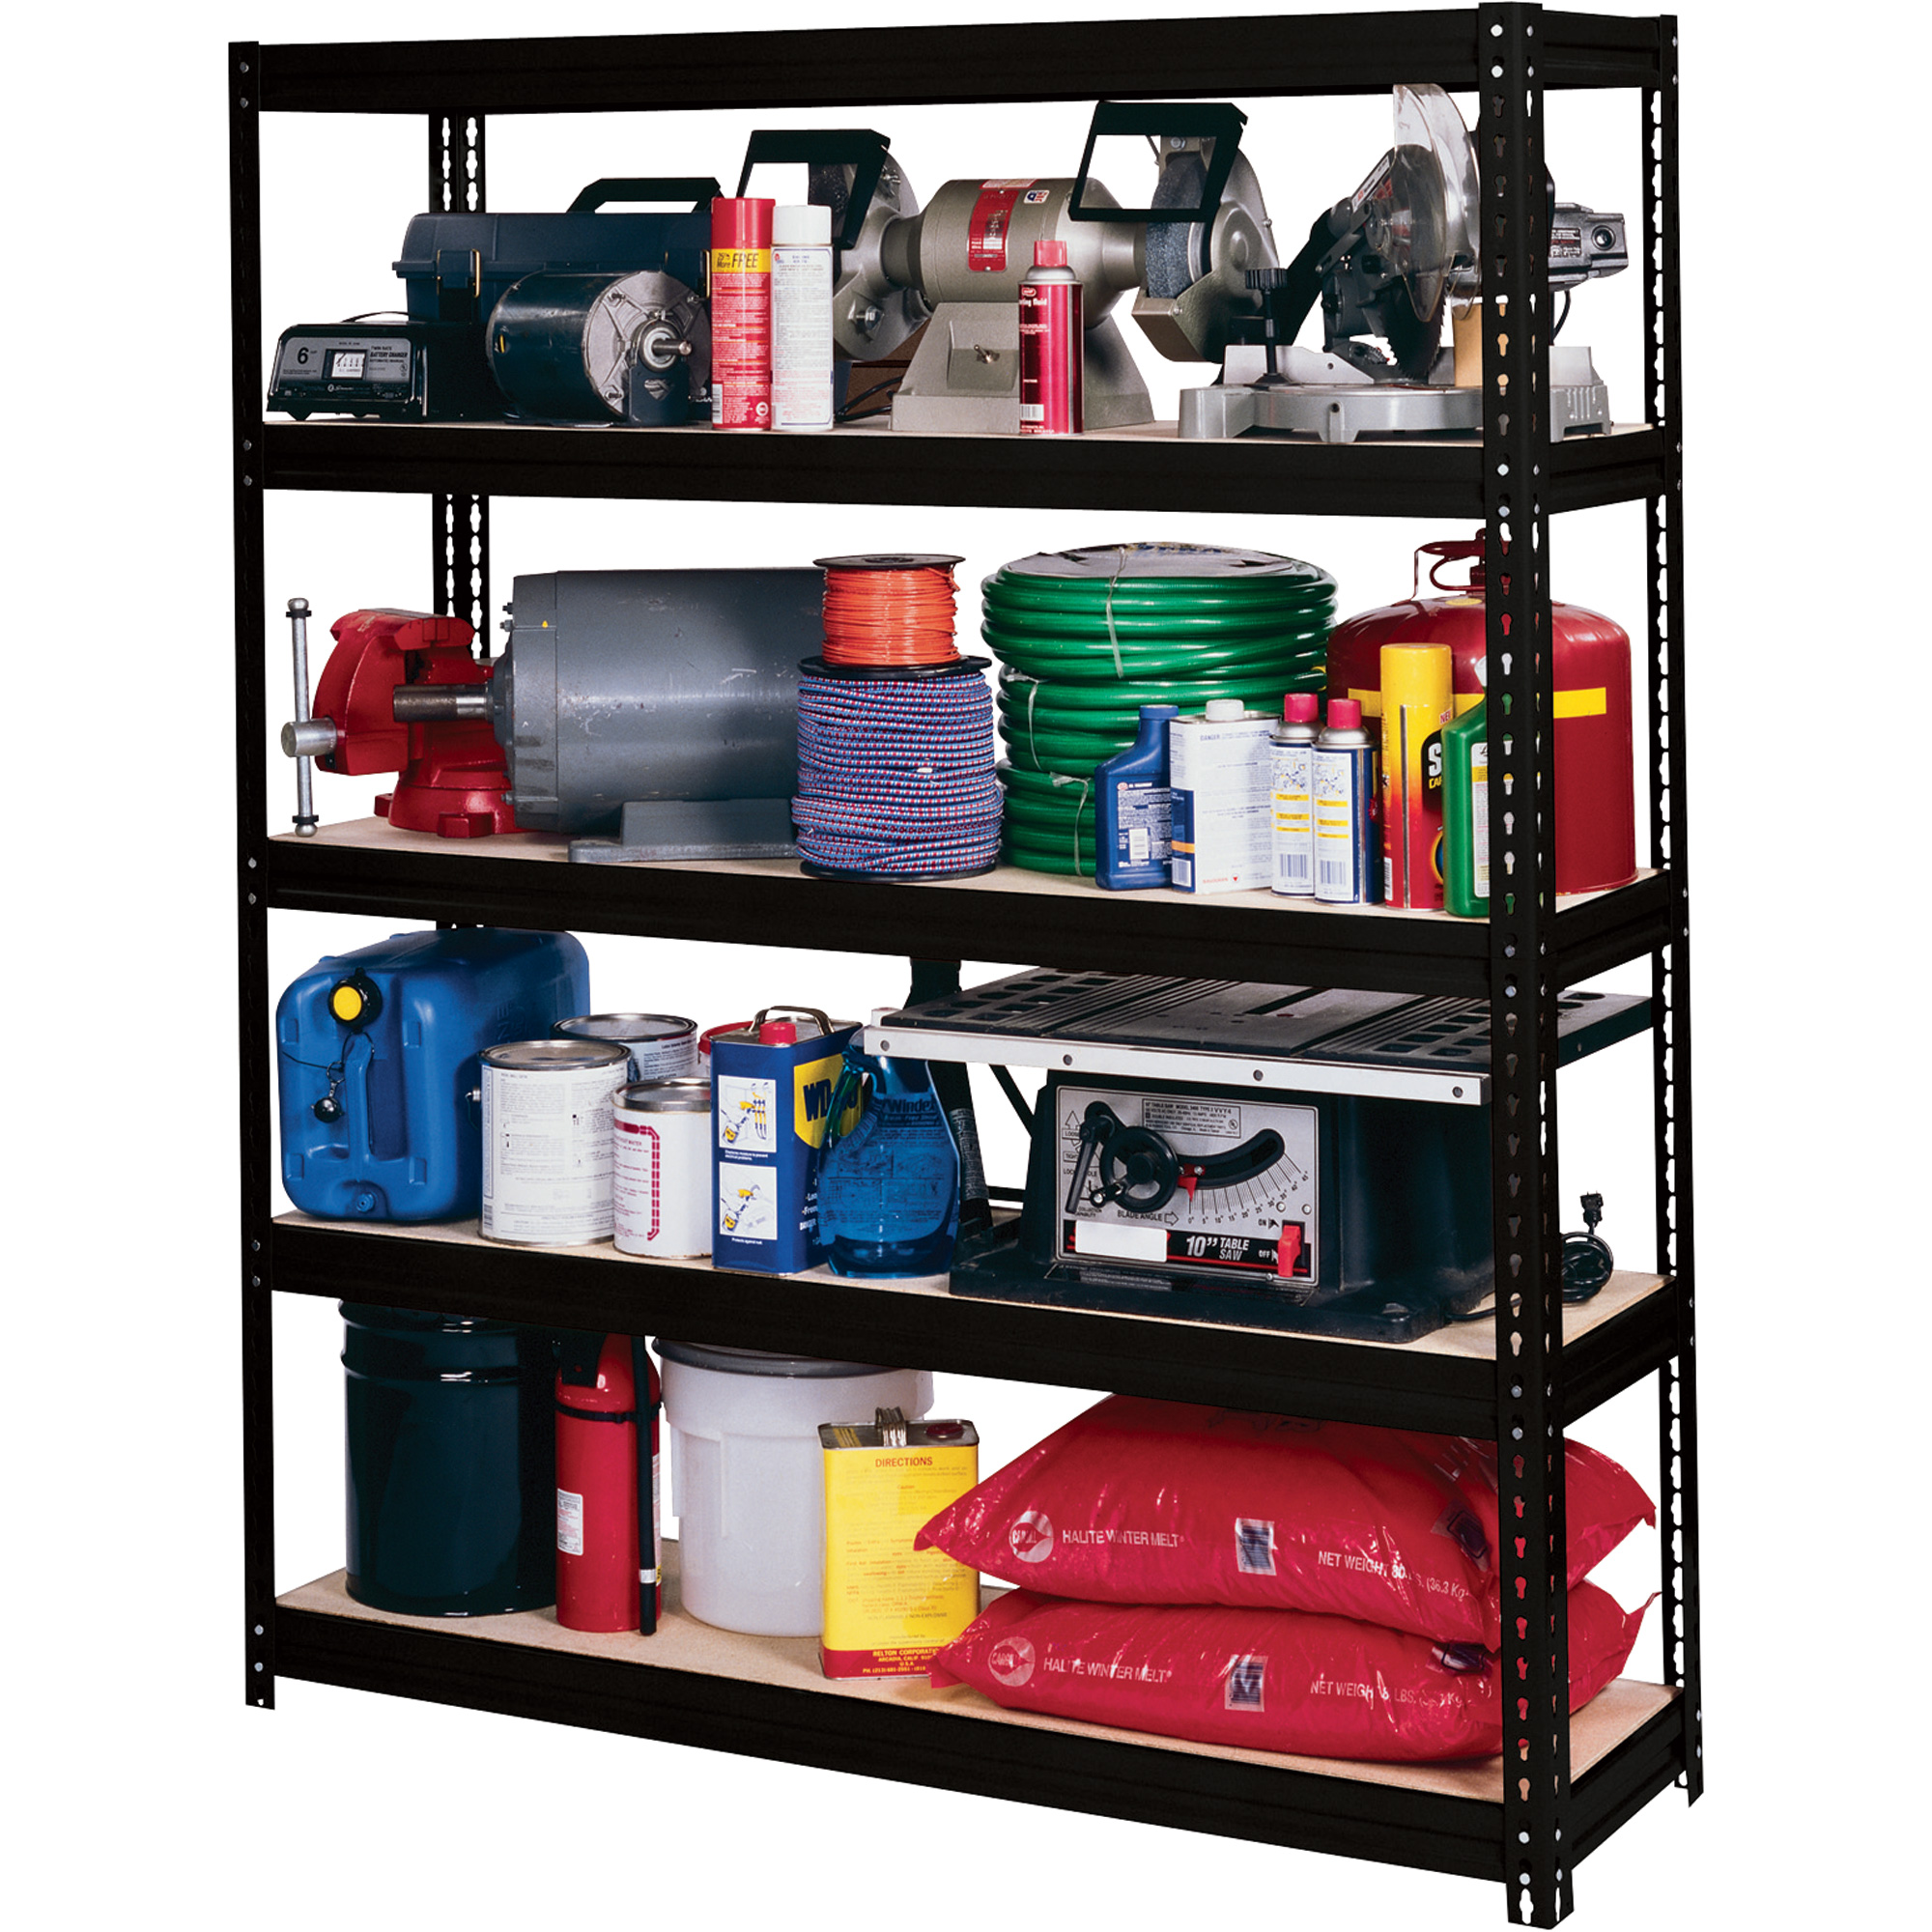 Awesome Black Edsal Shelving In Four Tier Design Made Of Steel For Garage Furniture Ideas